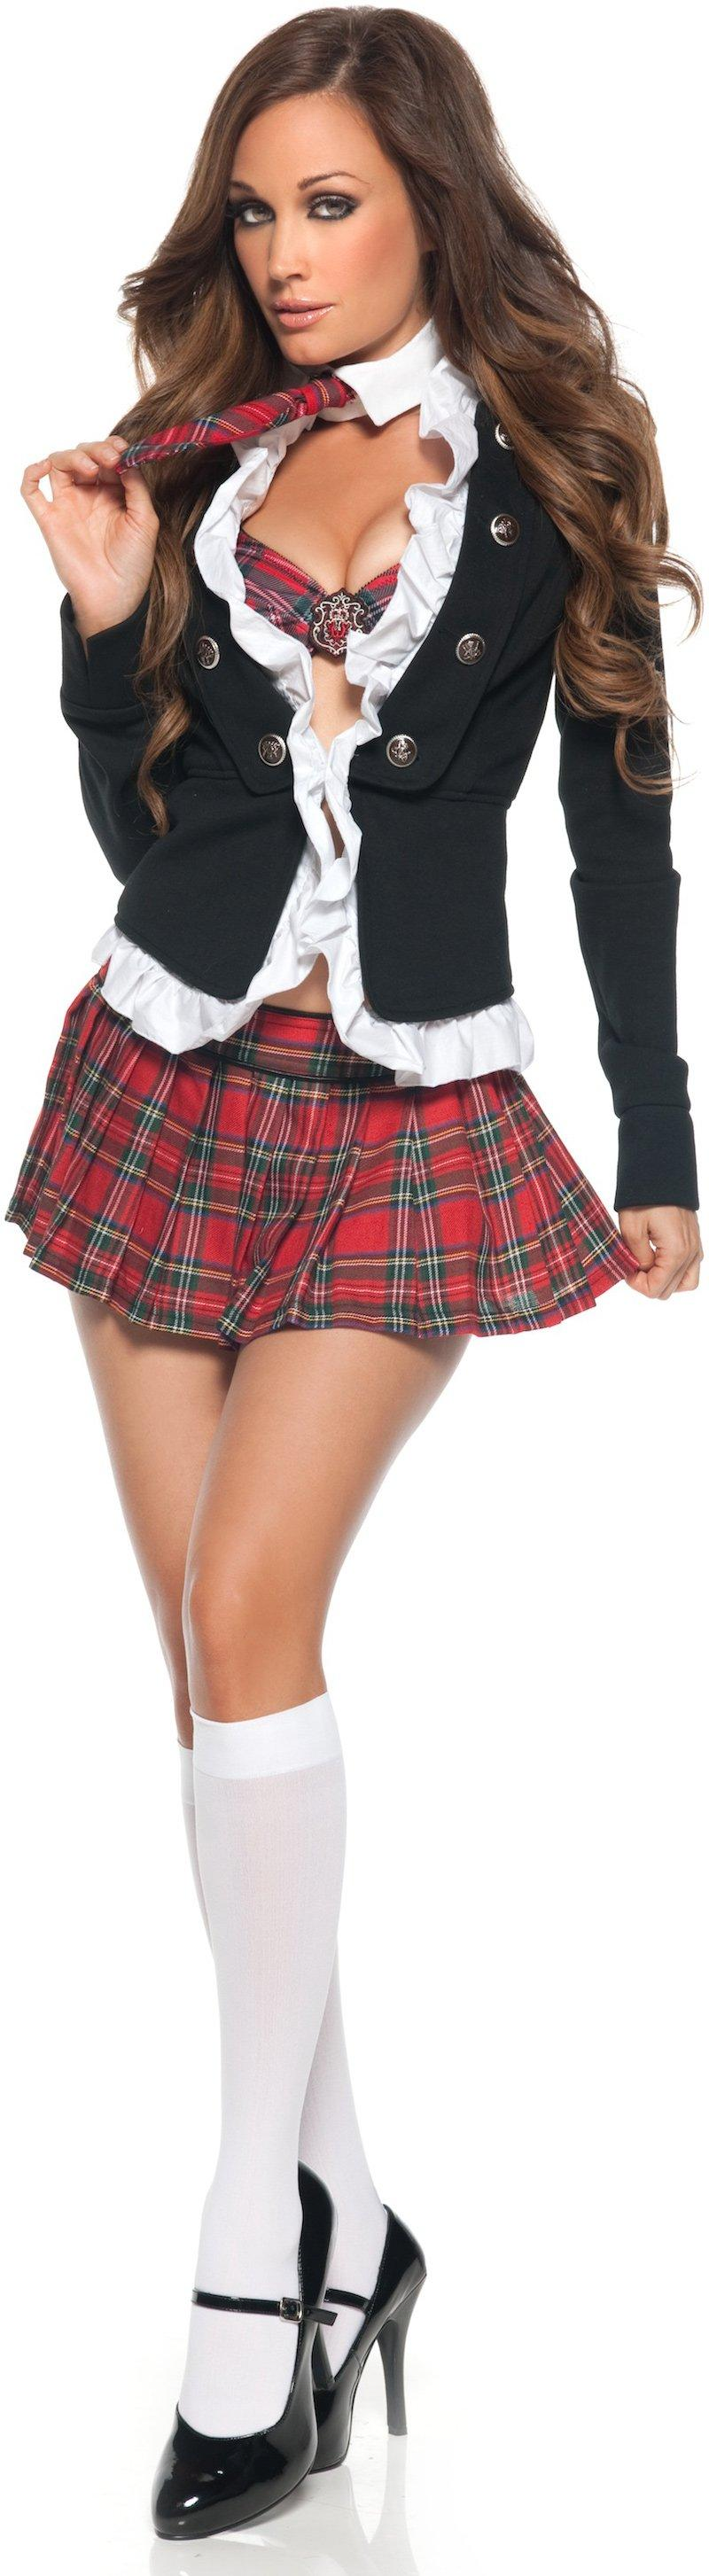 d0effb8521f Naughty+School+Girl+Adult+Costume from Buycostumes.com